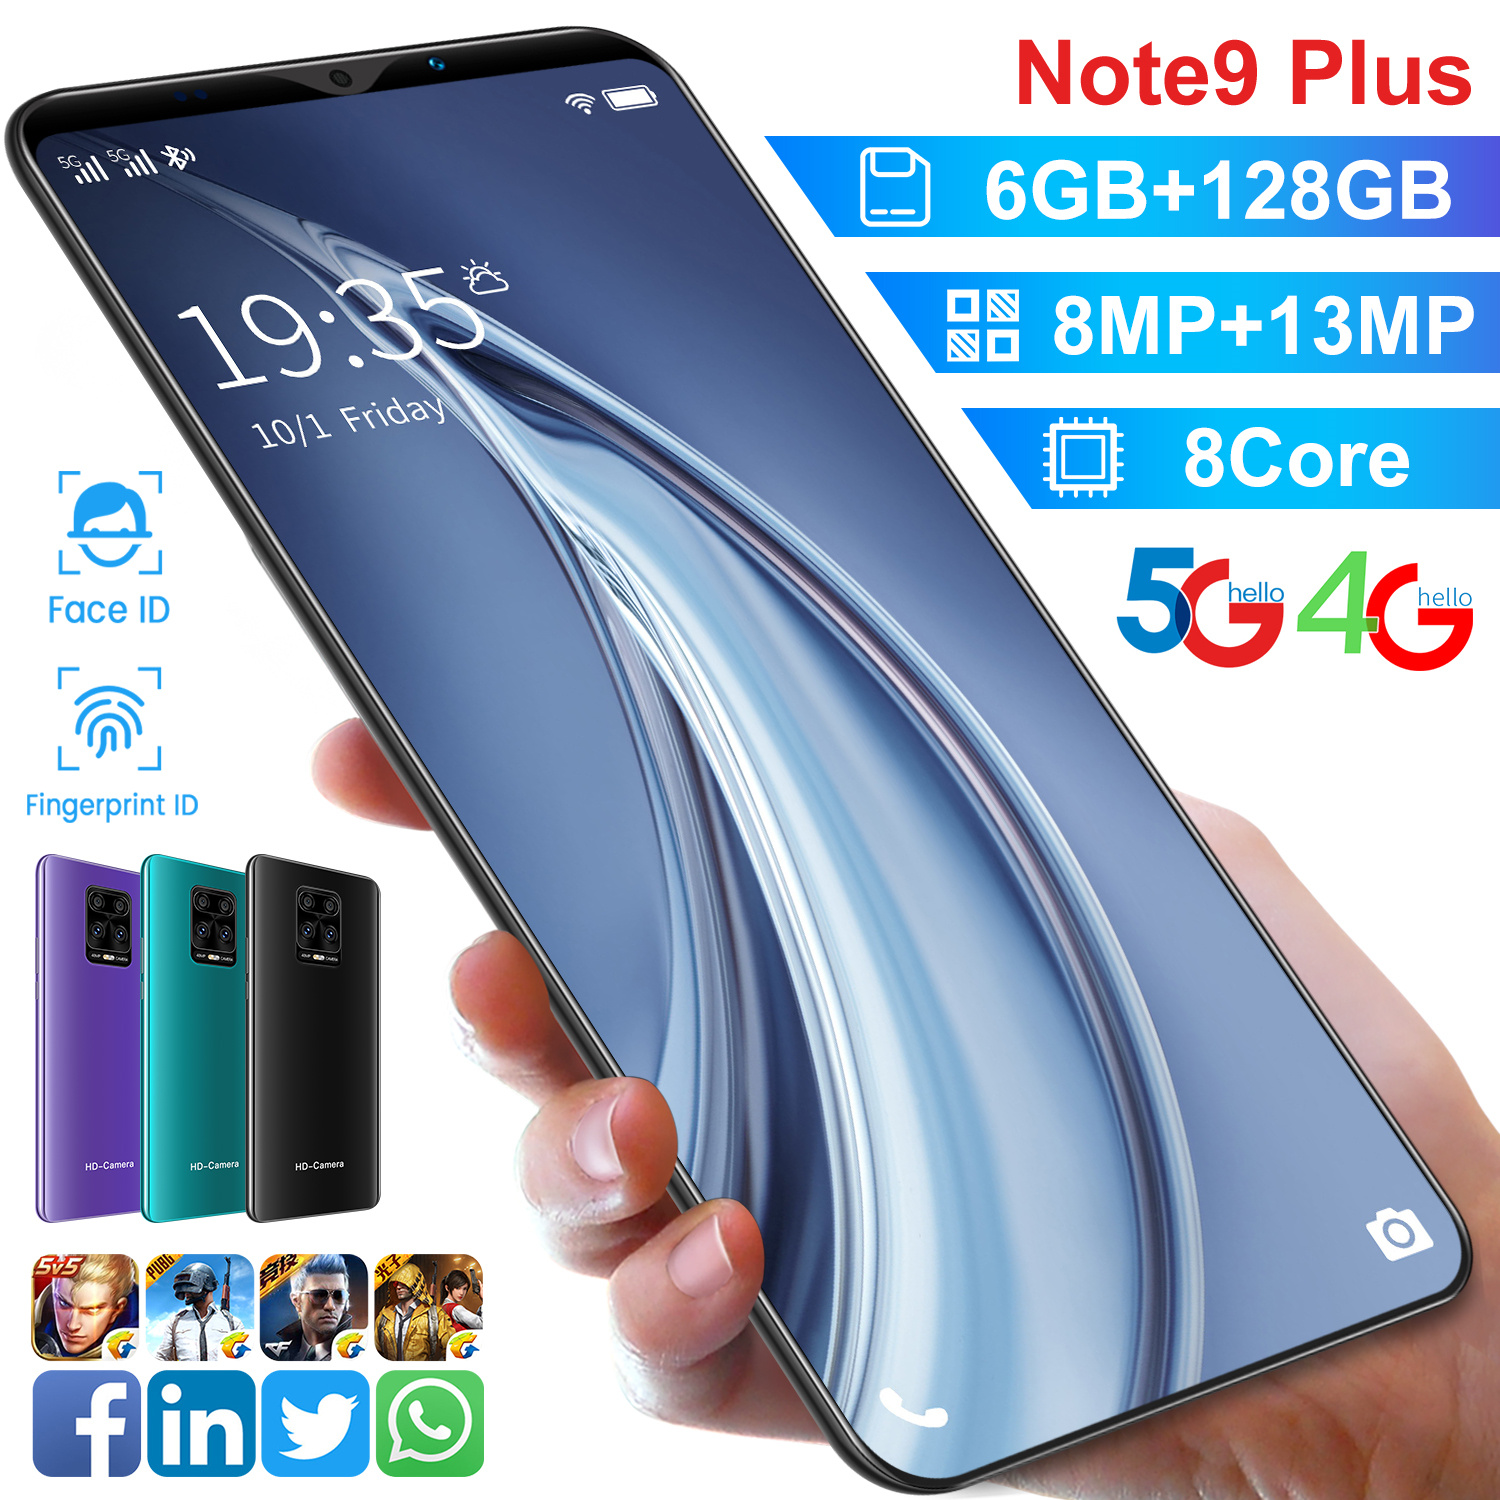 【hp murah cuci gudang】note9plus 5.8inci full screen ram 6/128GB handphone 8MP+13MP Android10.0 free gift bonus for hp oppo terbaru 2020 note20 hp murah 600 ribuan handphone promo